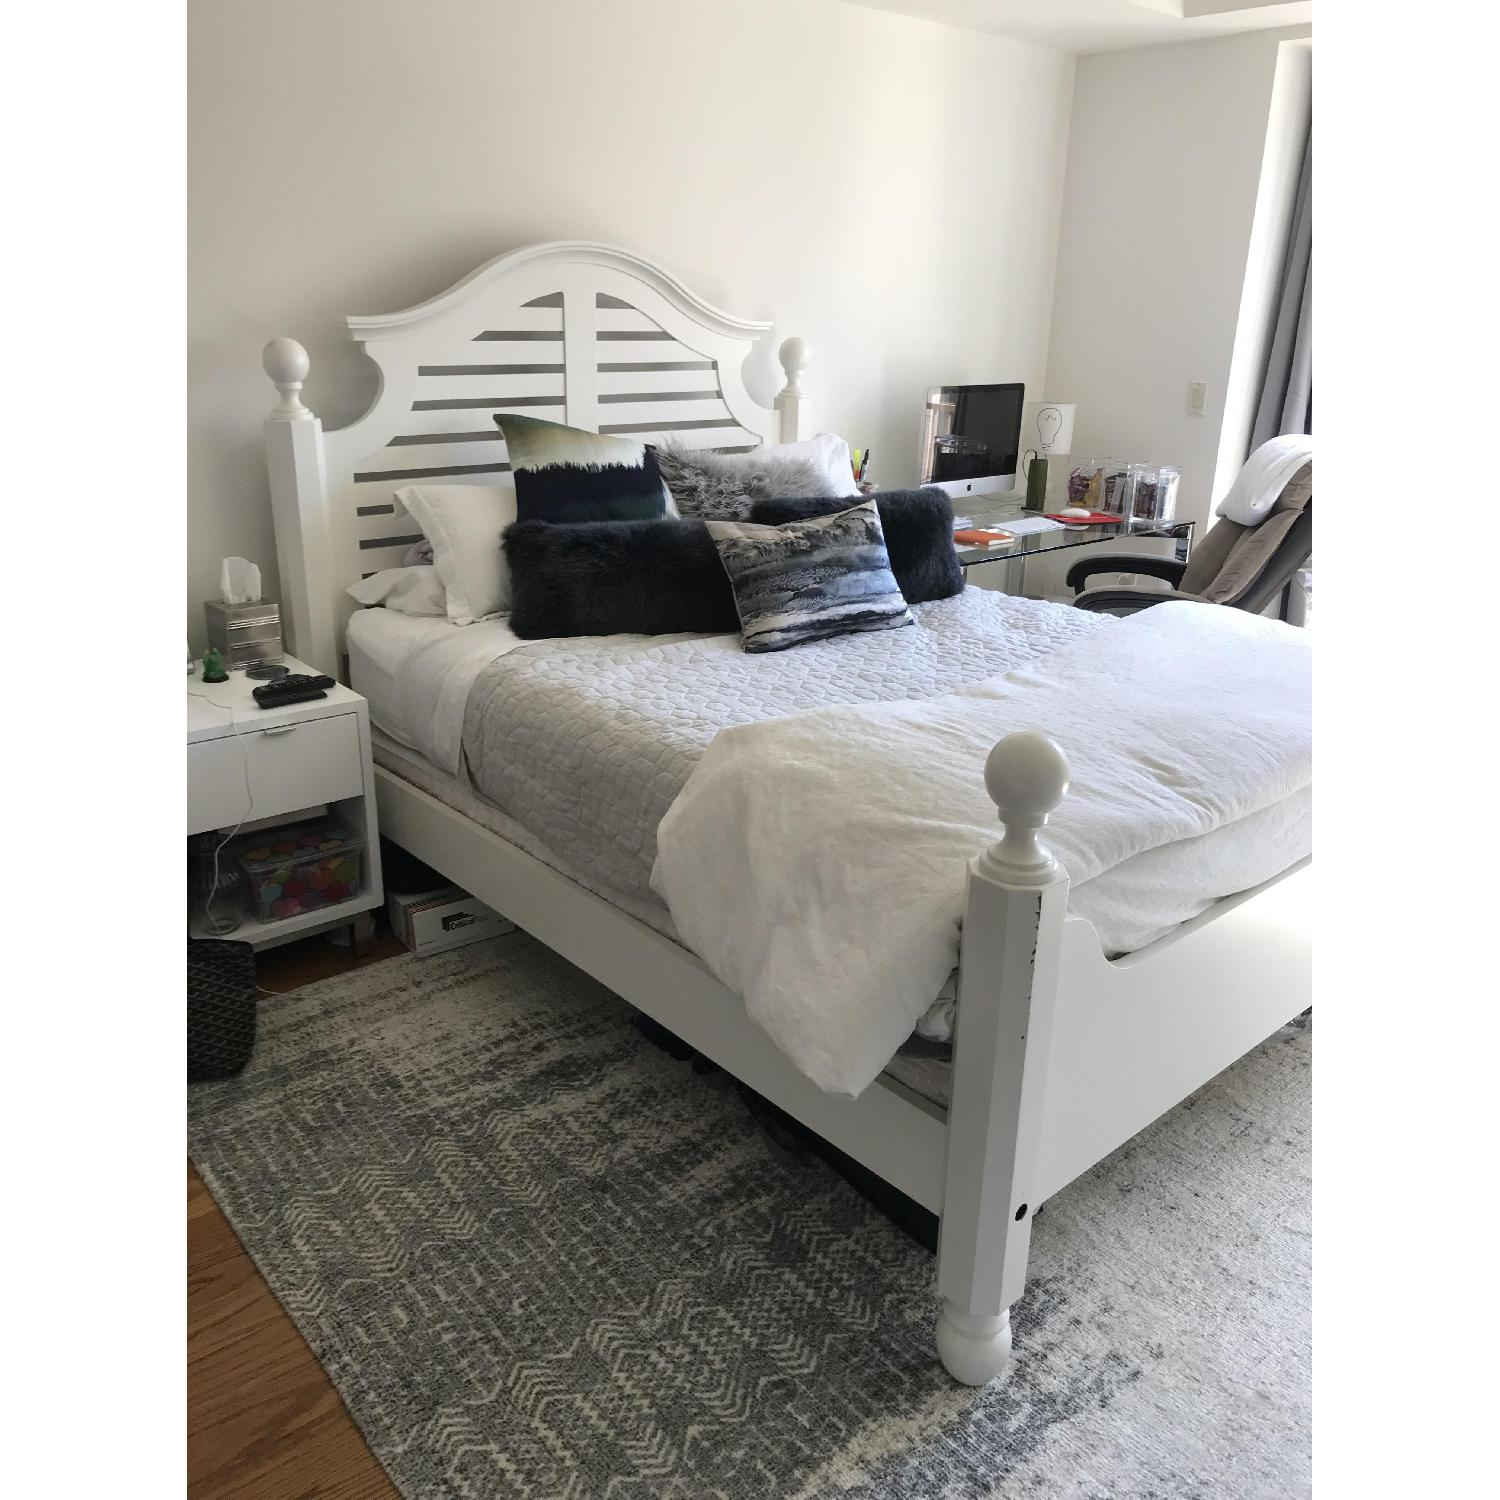 Pottery Barn Classic Queen White Wooden Bed Frame - image-2